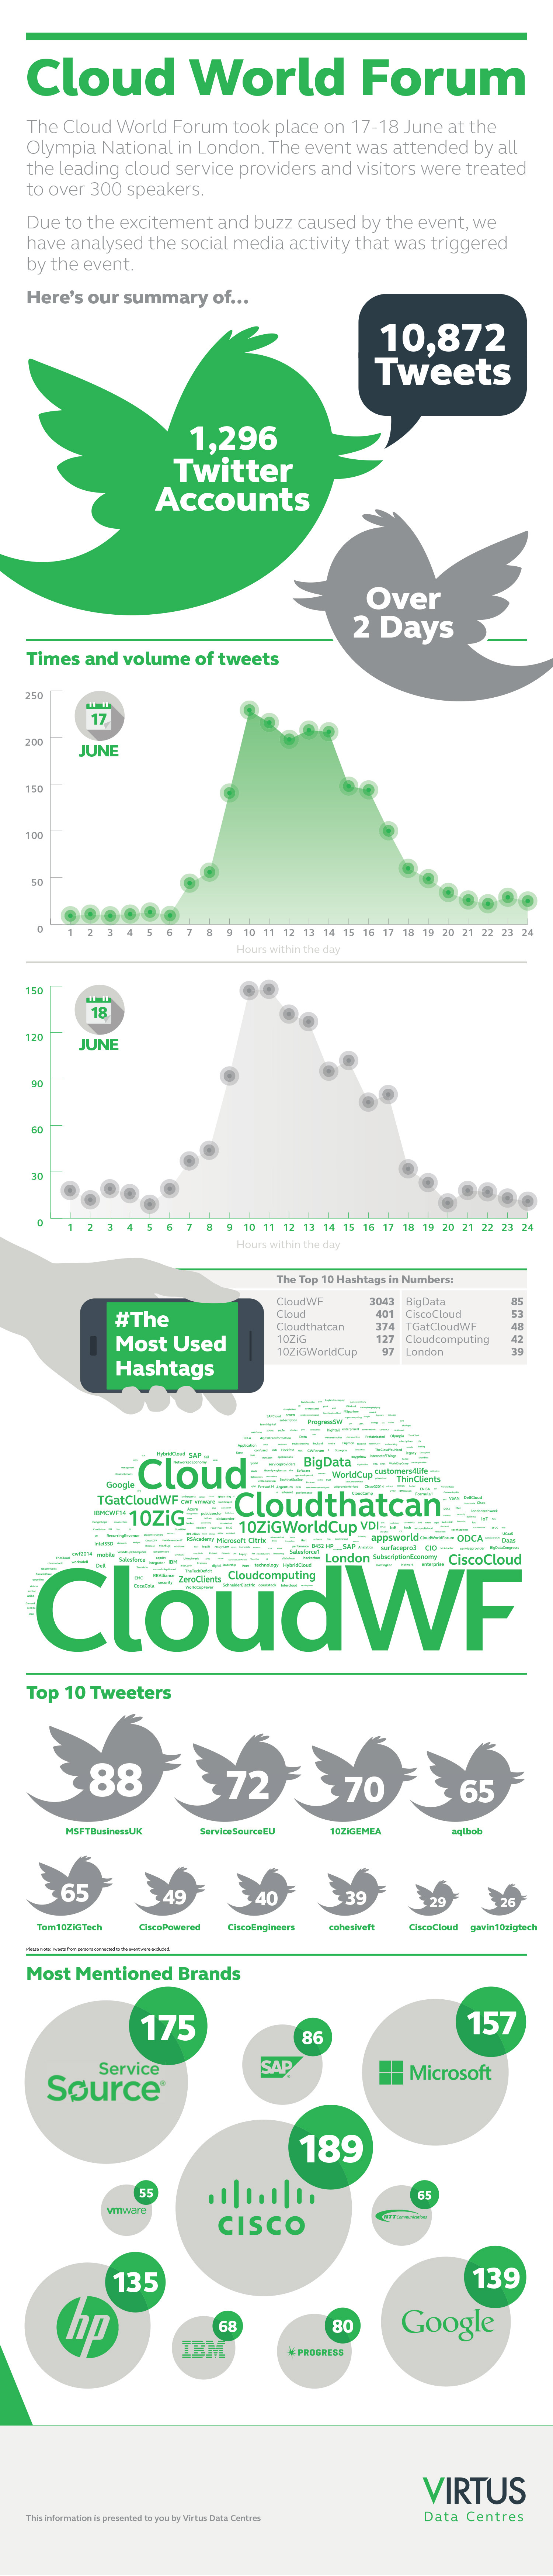 The Cloud World Forum 2014 Infographic